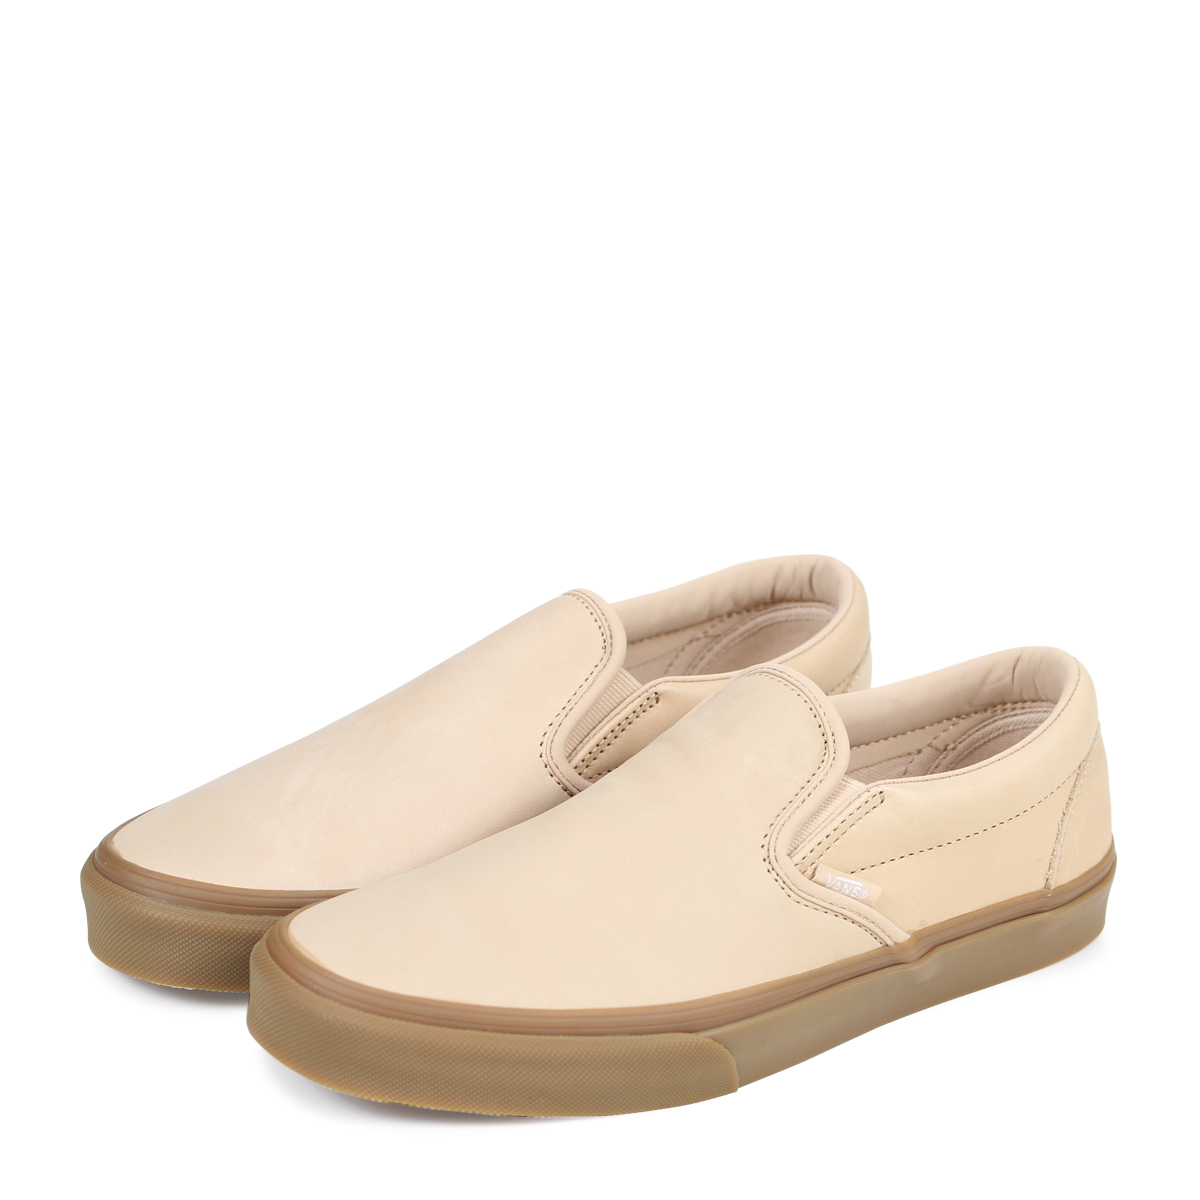 e53f241ab2 VANS CLASSIC SLIP-ON DX slip-ons sneakers men gap Dis vans station wagons  VN0A38F8QU7 beige  187